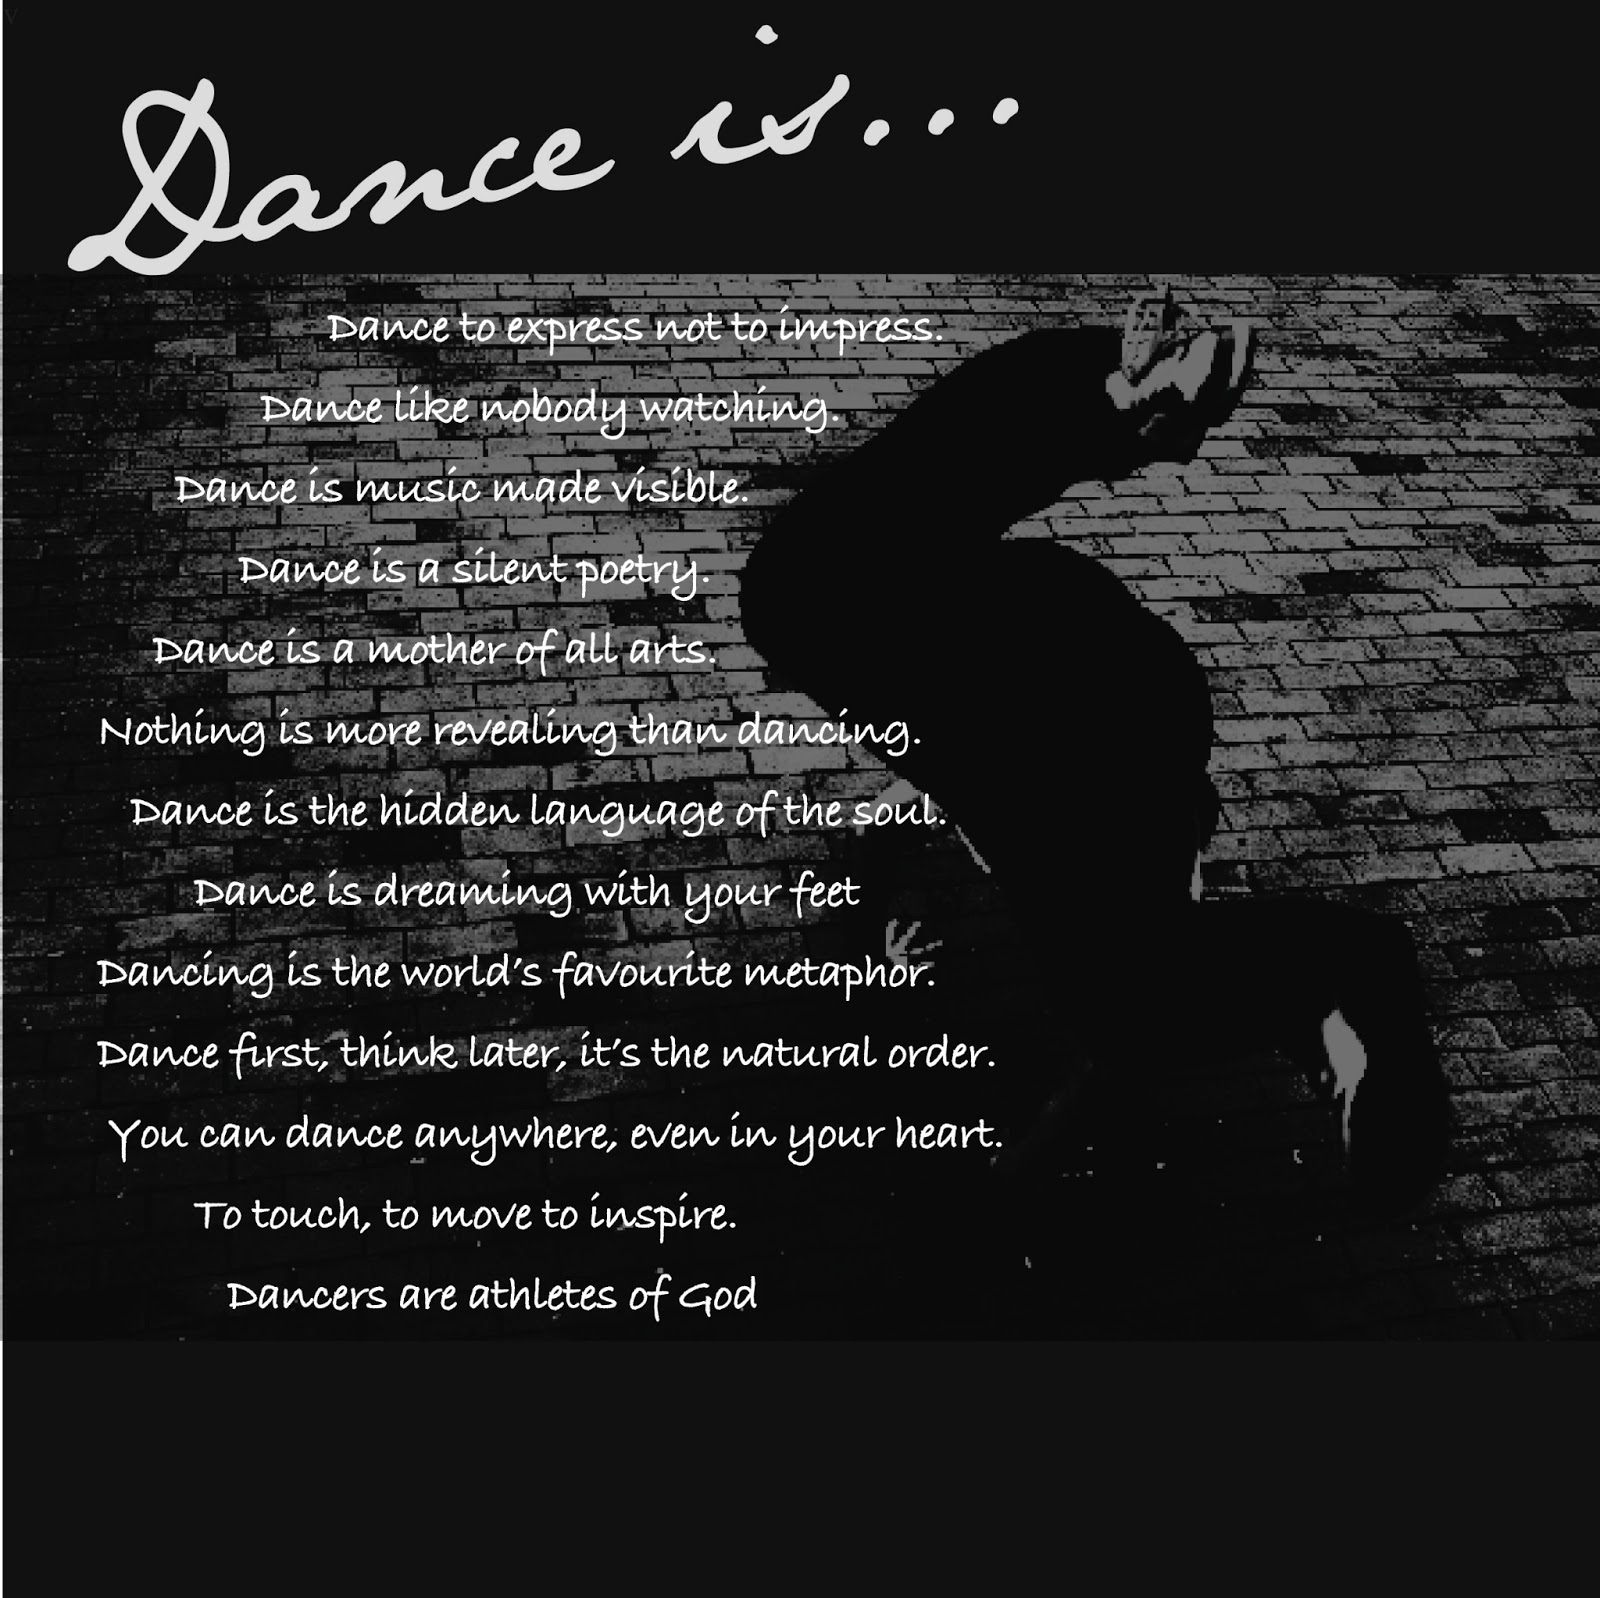 quotes about dance tumblr - photo #30